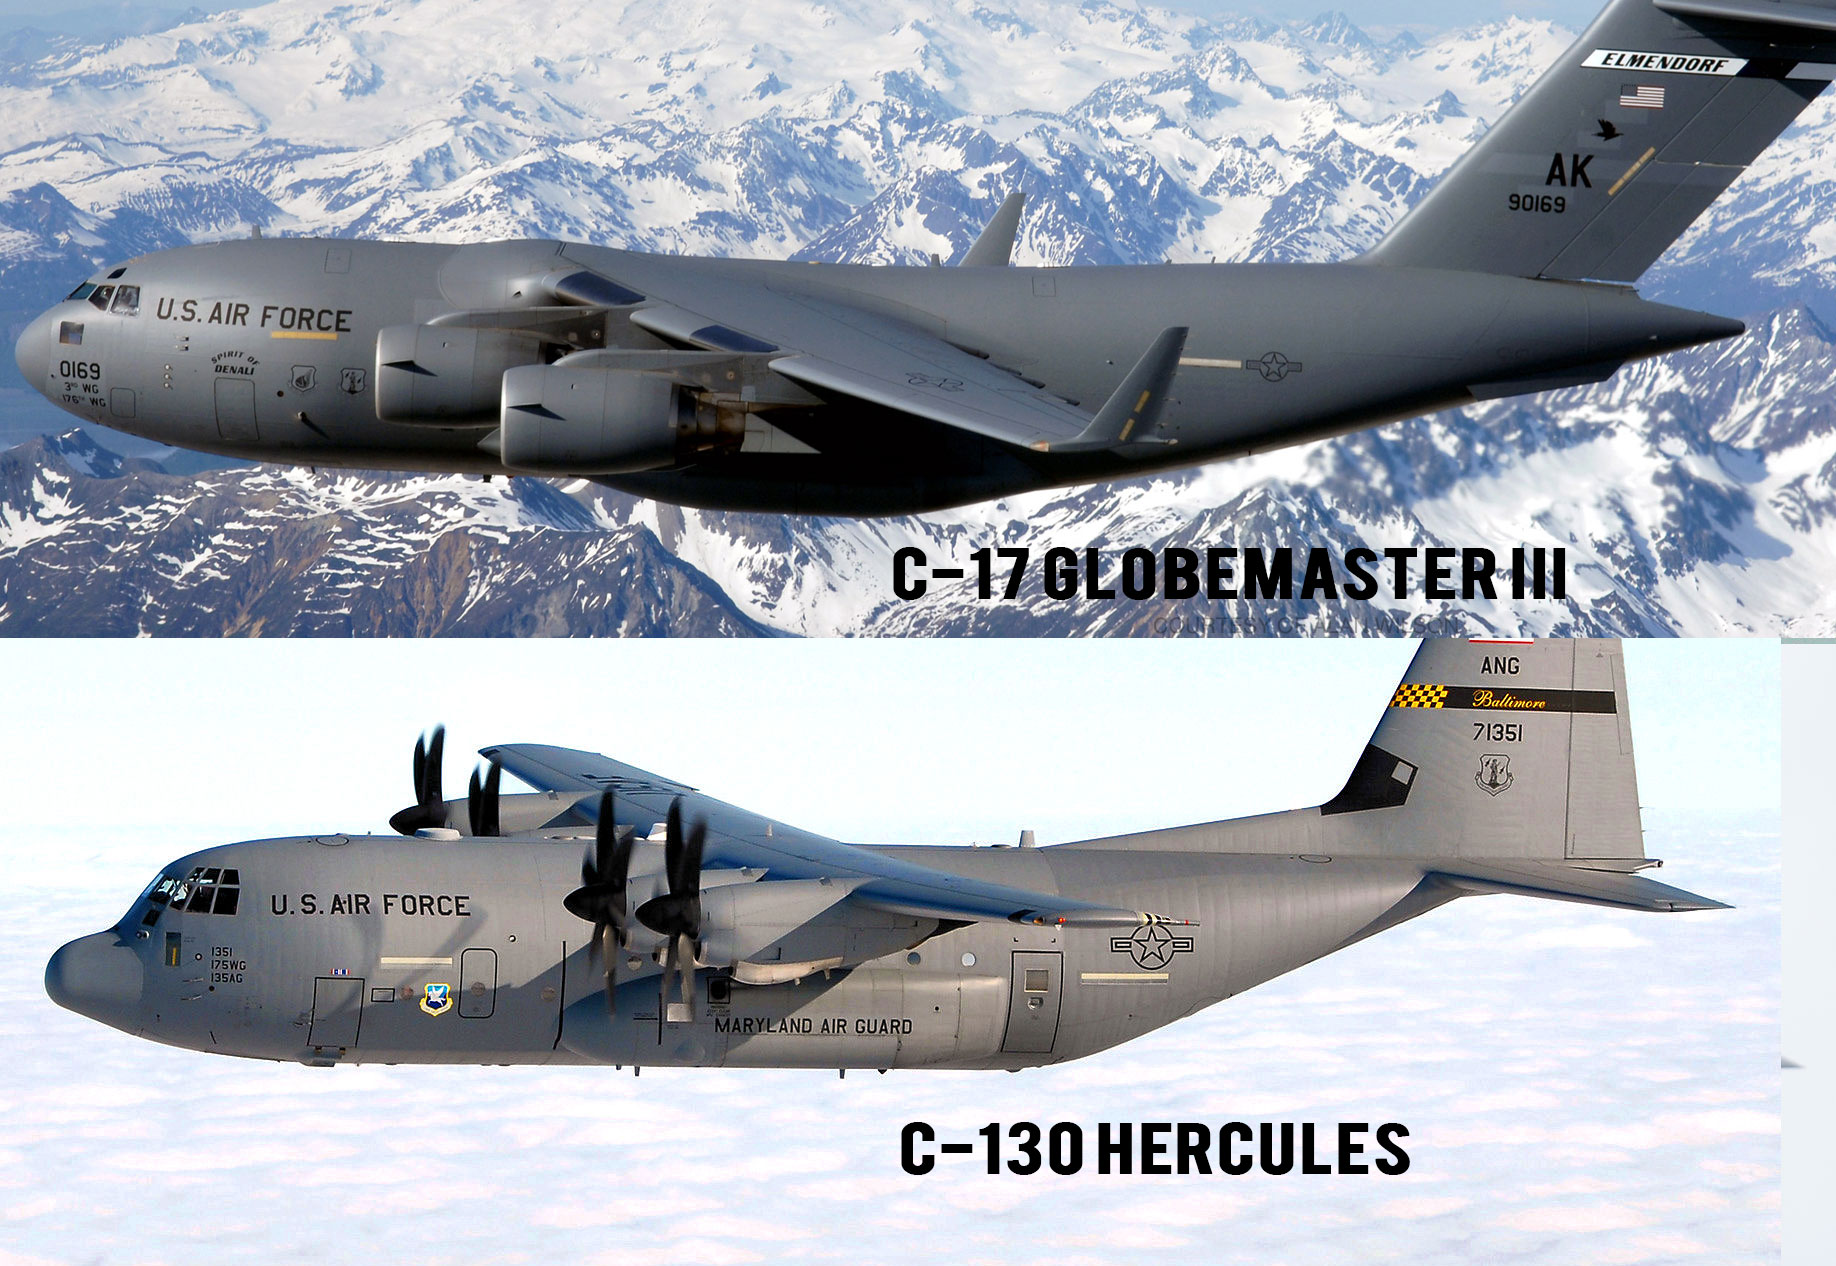 U.S. Air Force • C-17 Globemasters IIIs and C-130 Hercules